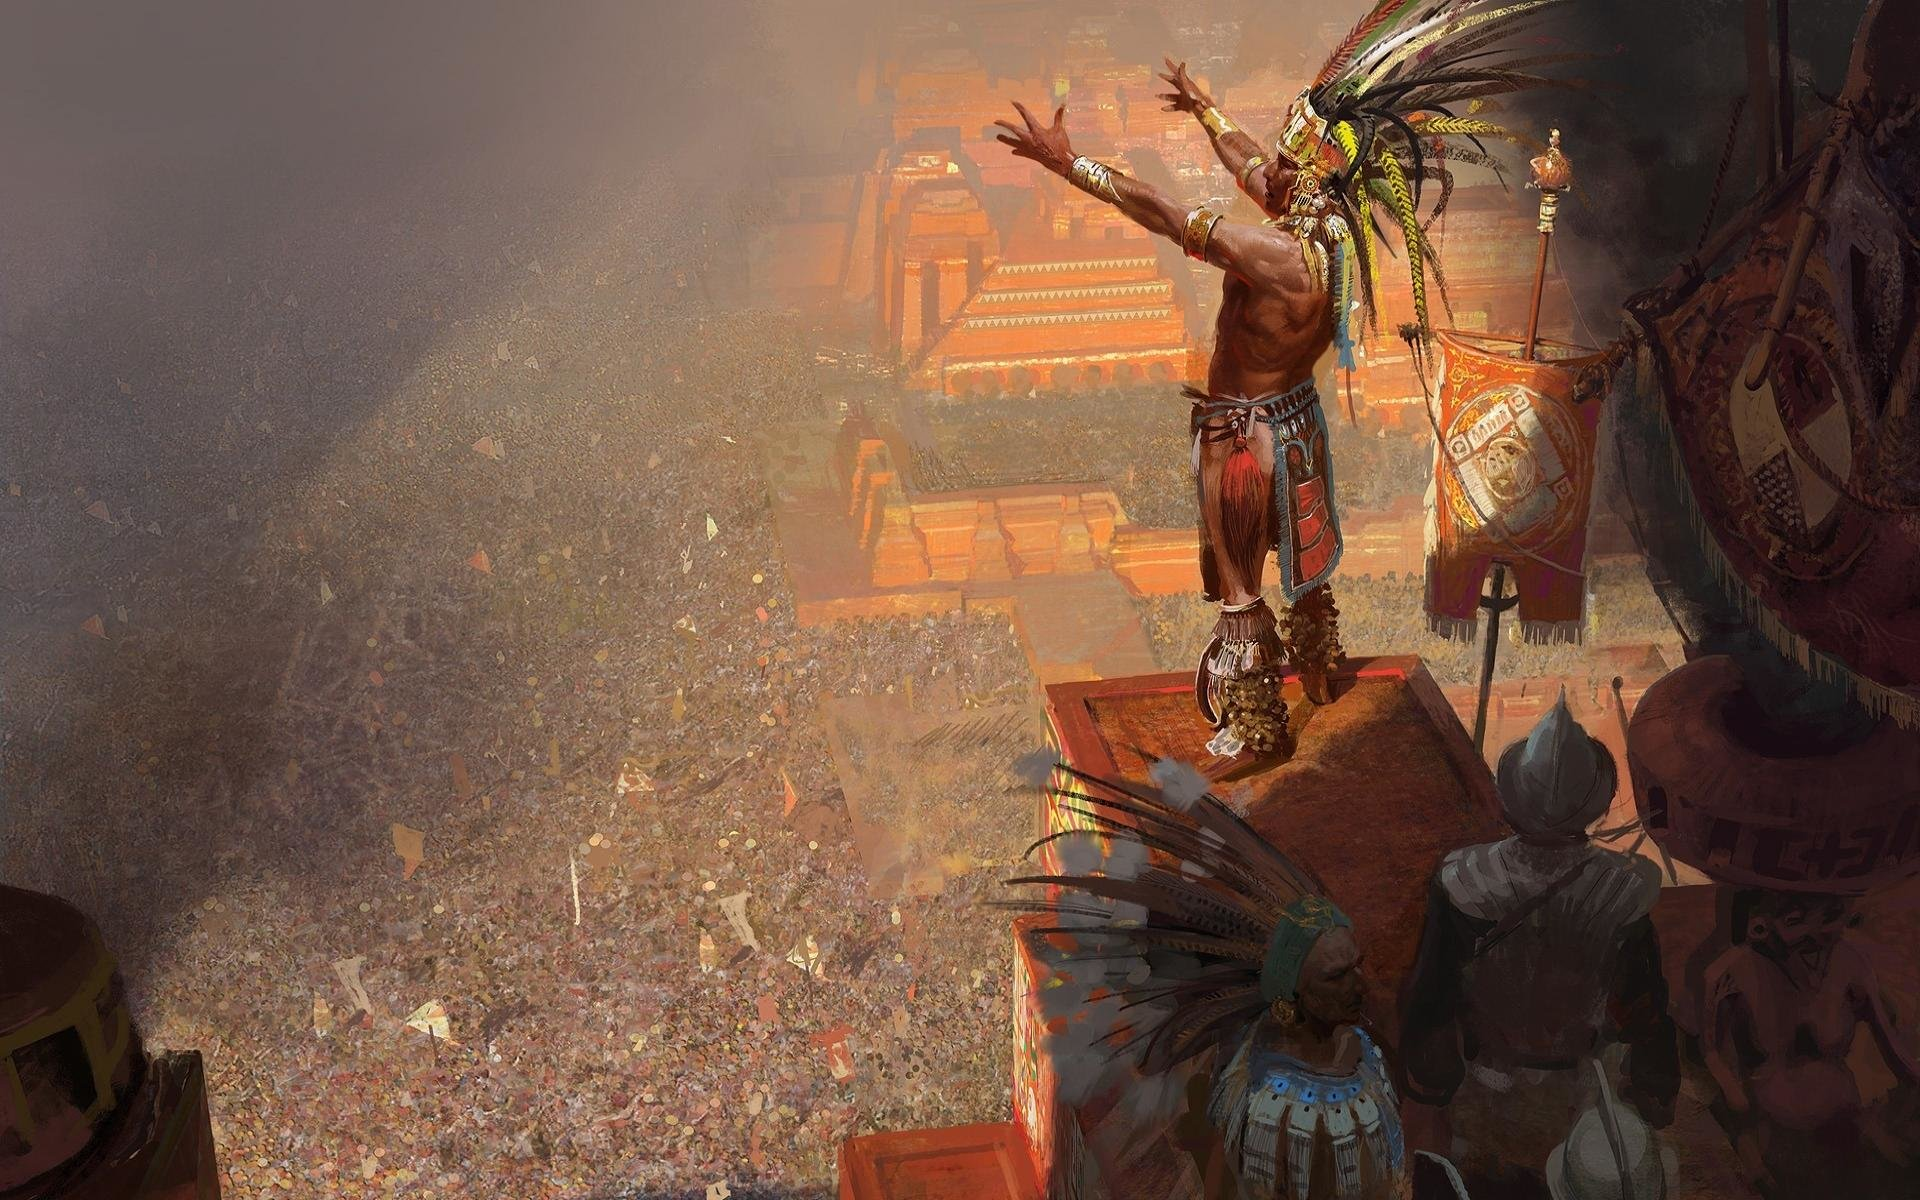 Age Of Empires wallpapers HD for desktop backgrounds